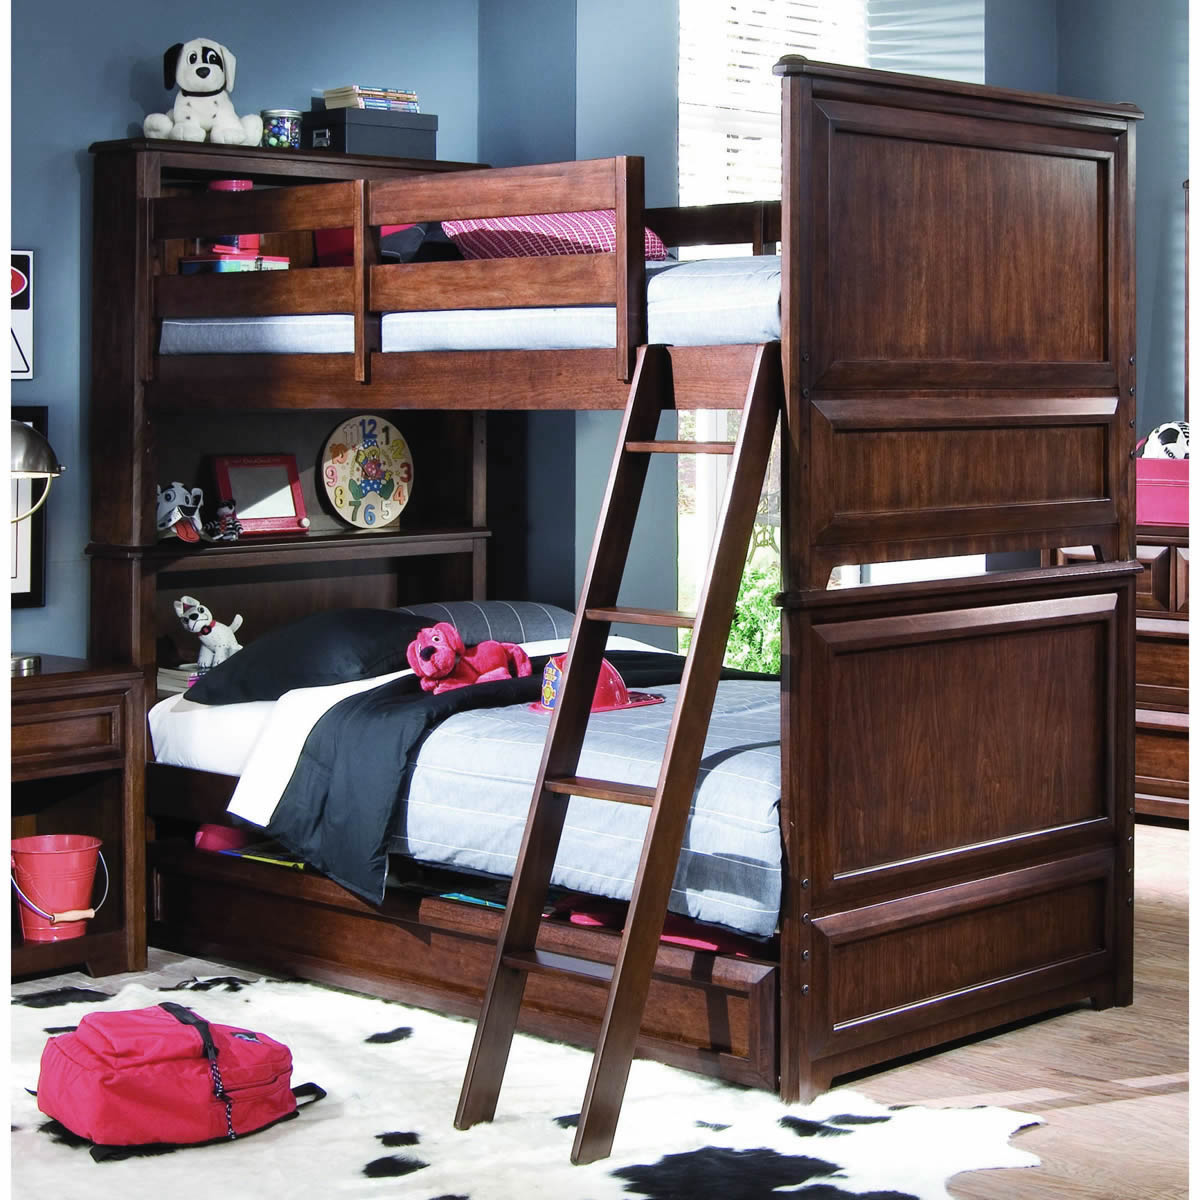 Image of: Dark Twin Bunk Beds With Storage